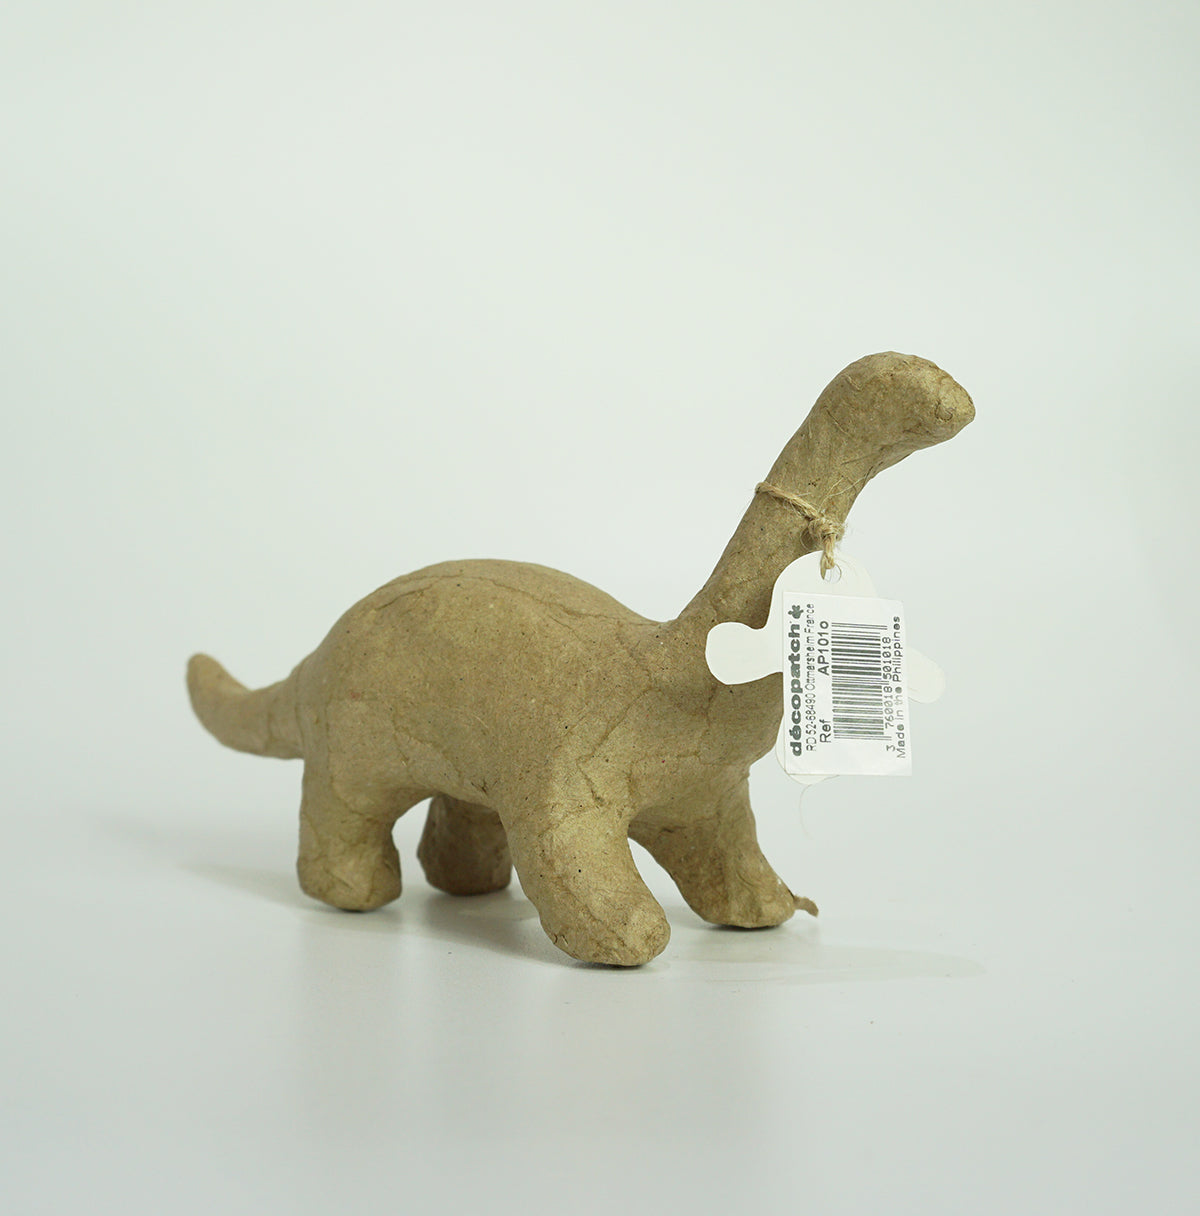 Decopatch Pulp Small Brontosaurus - Me Books Asia Store